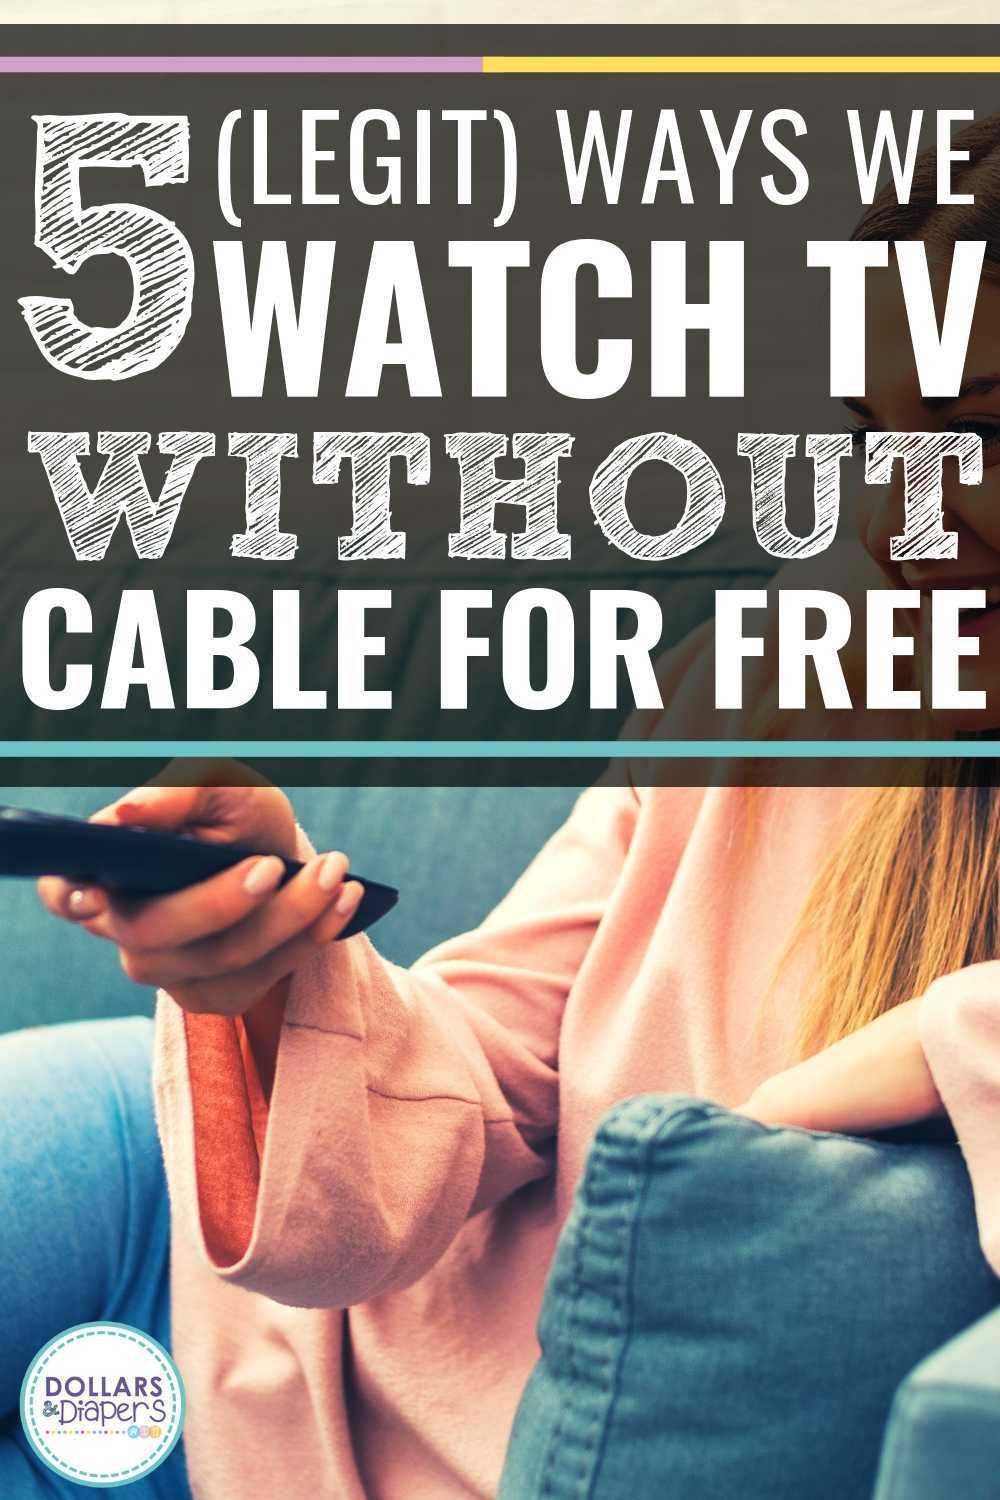 5 Ways To Get Free Cable Tv Getting Free Cable Tv Is Totally Possible If You Want To Learn How To Tv Without Cable Watch Tv Without Cable Watch Tv For Free